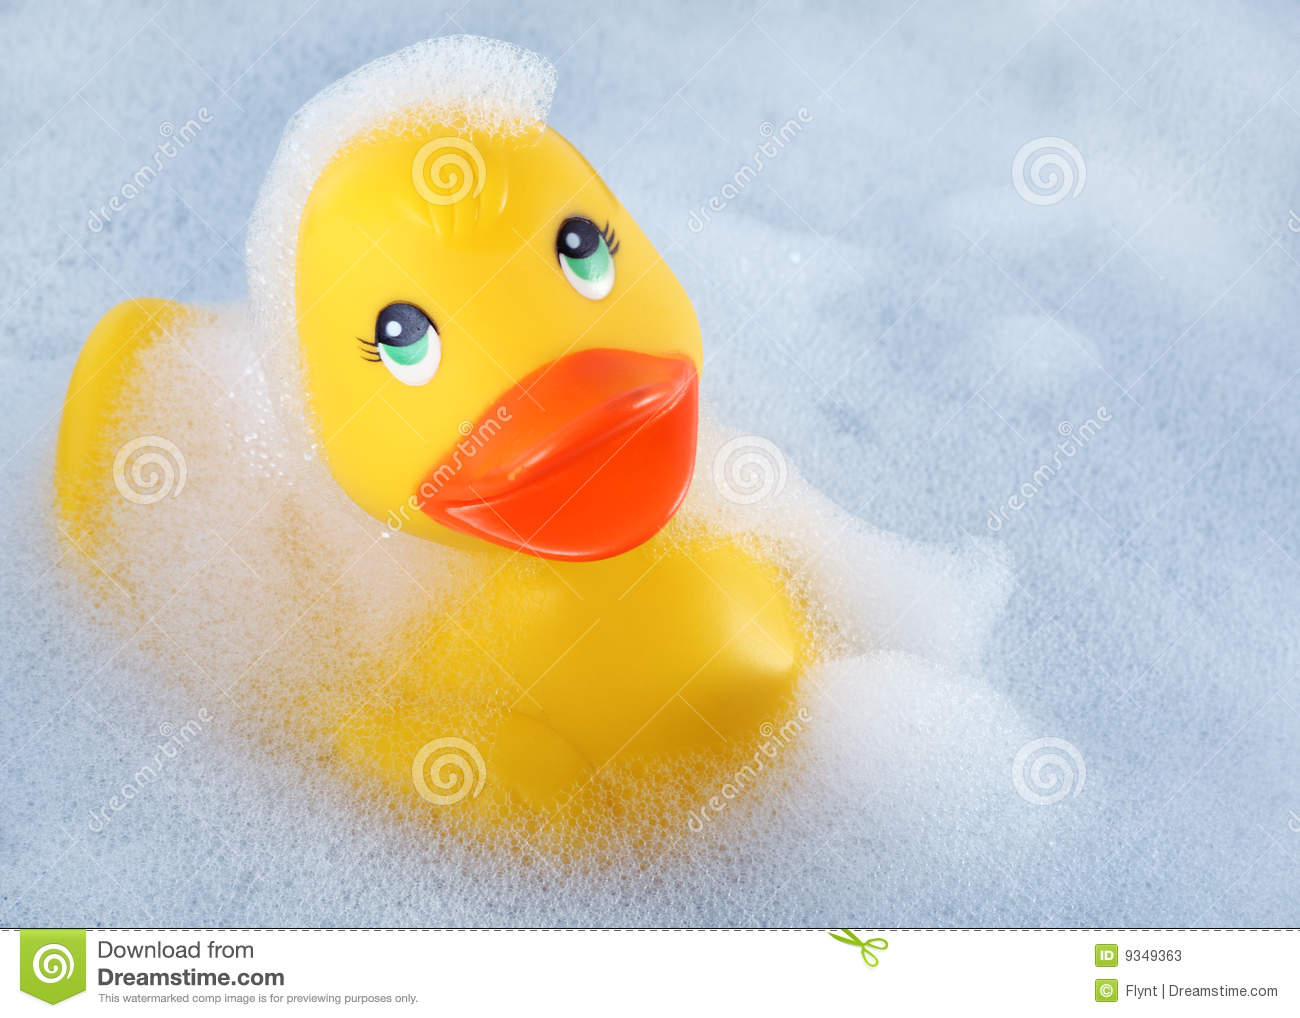 Rubber duck in the bath stock photos image 9349363